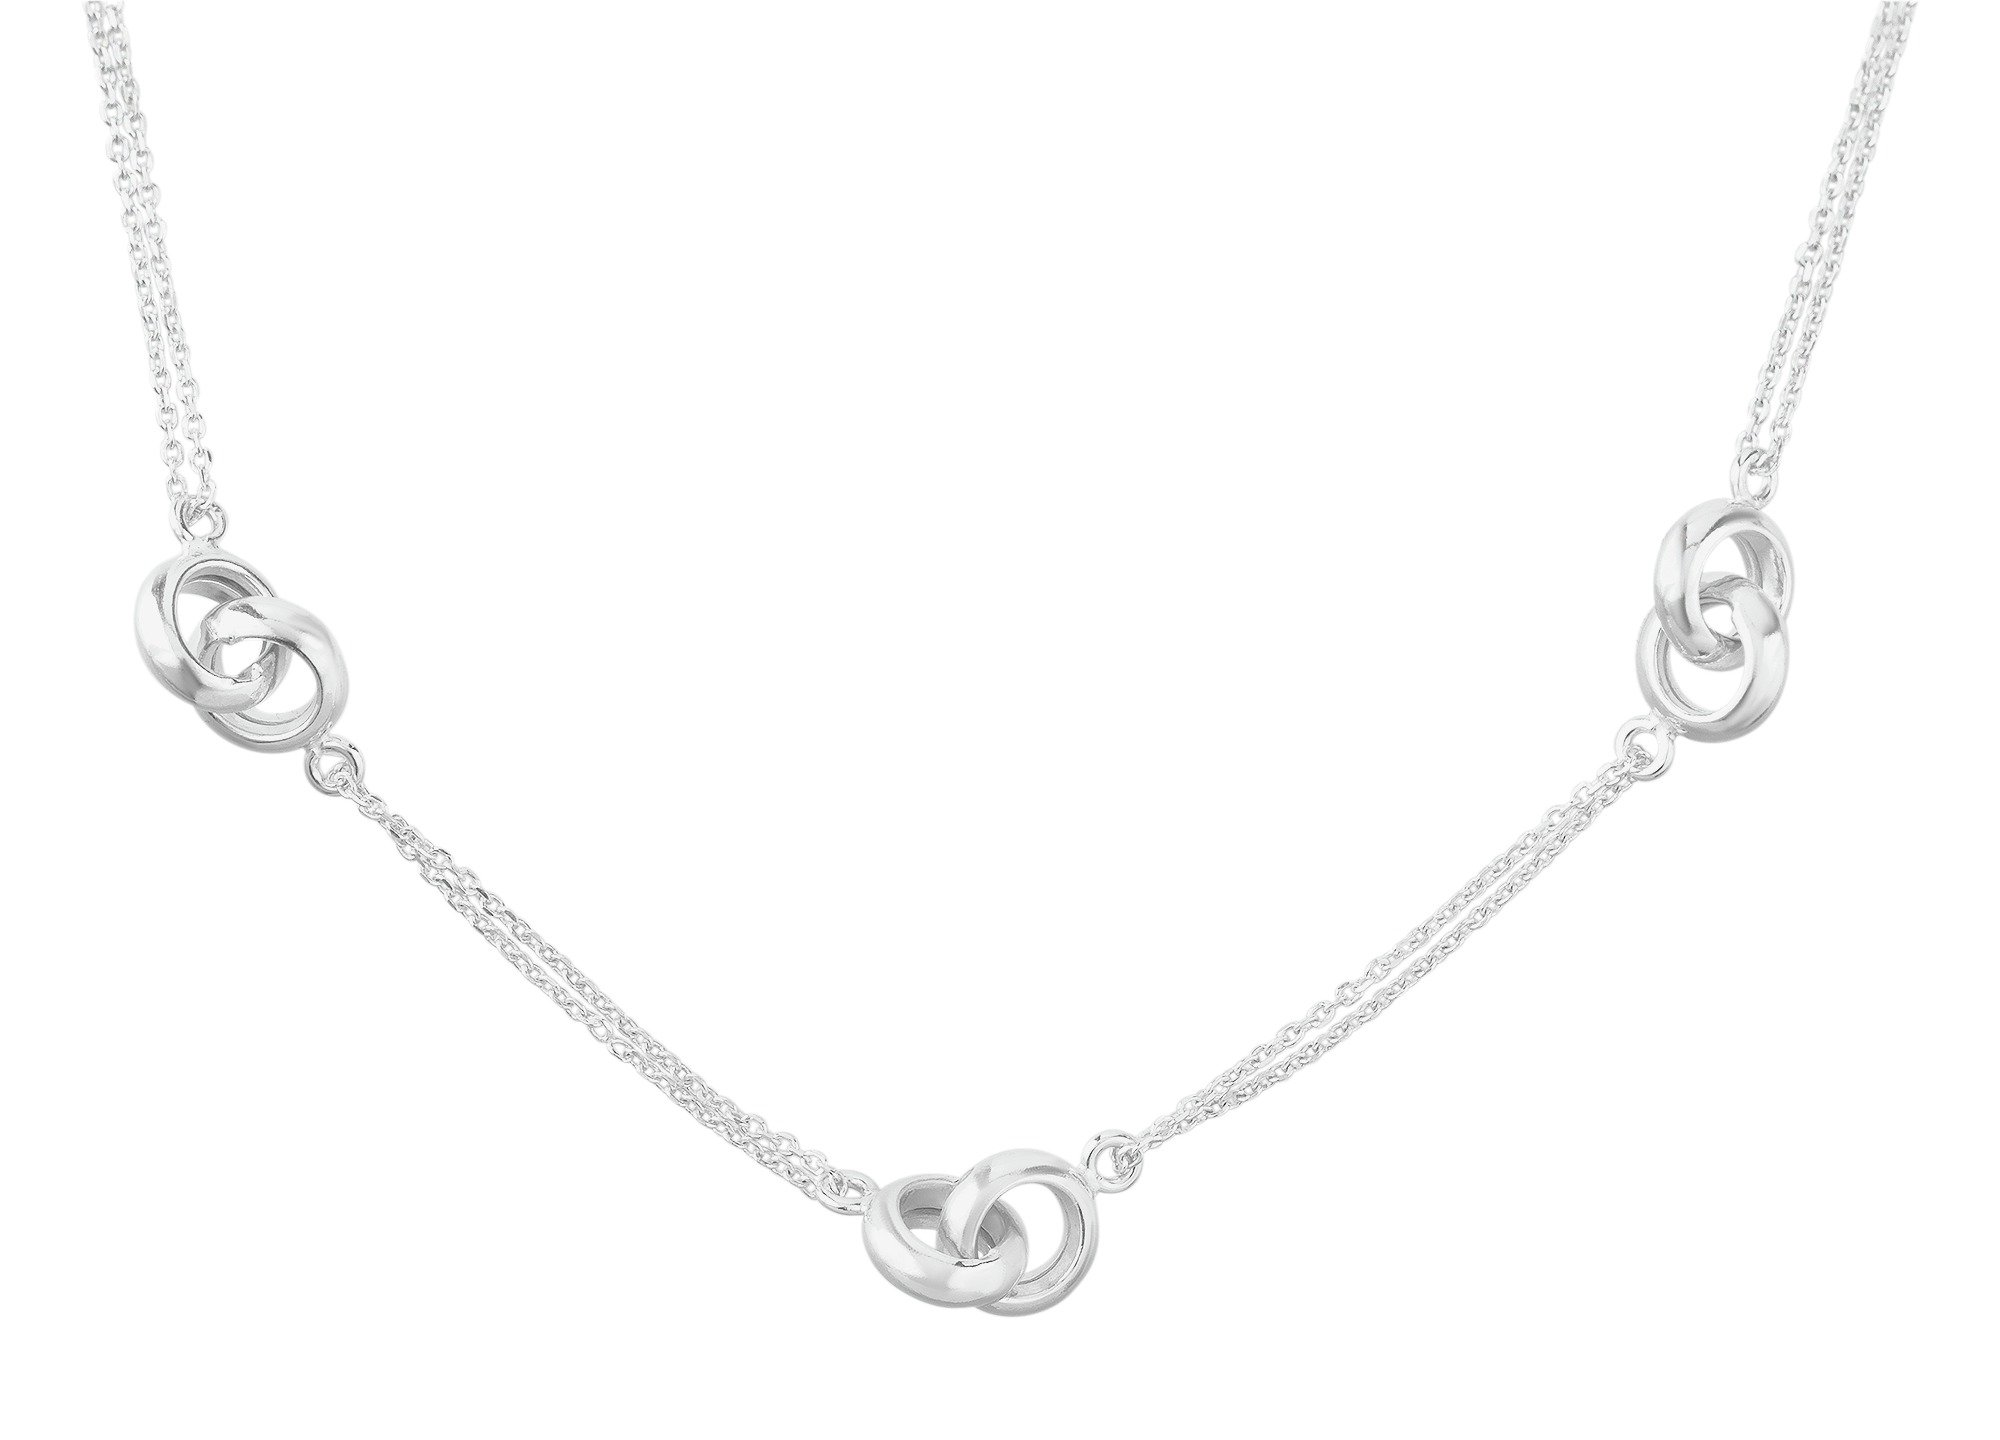 Image of Adoration - Sterling Silver - Hugs Necklace.